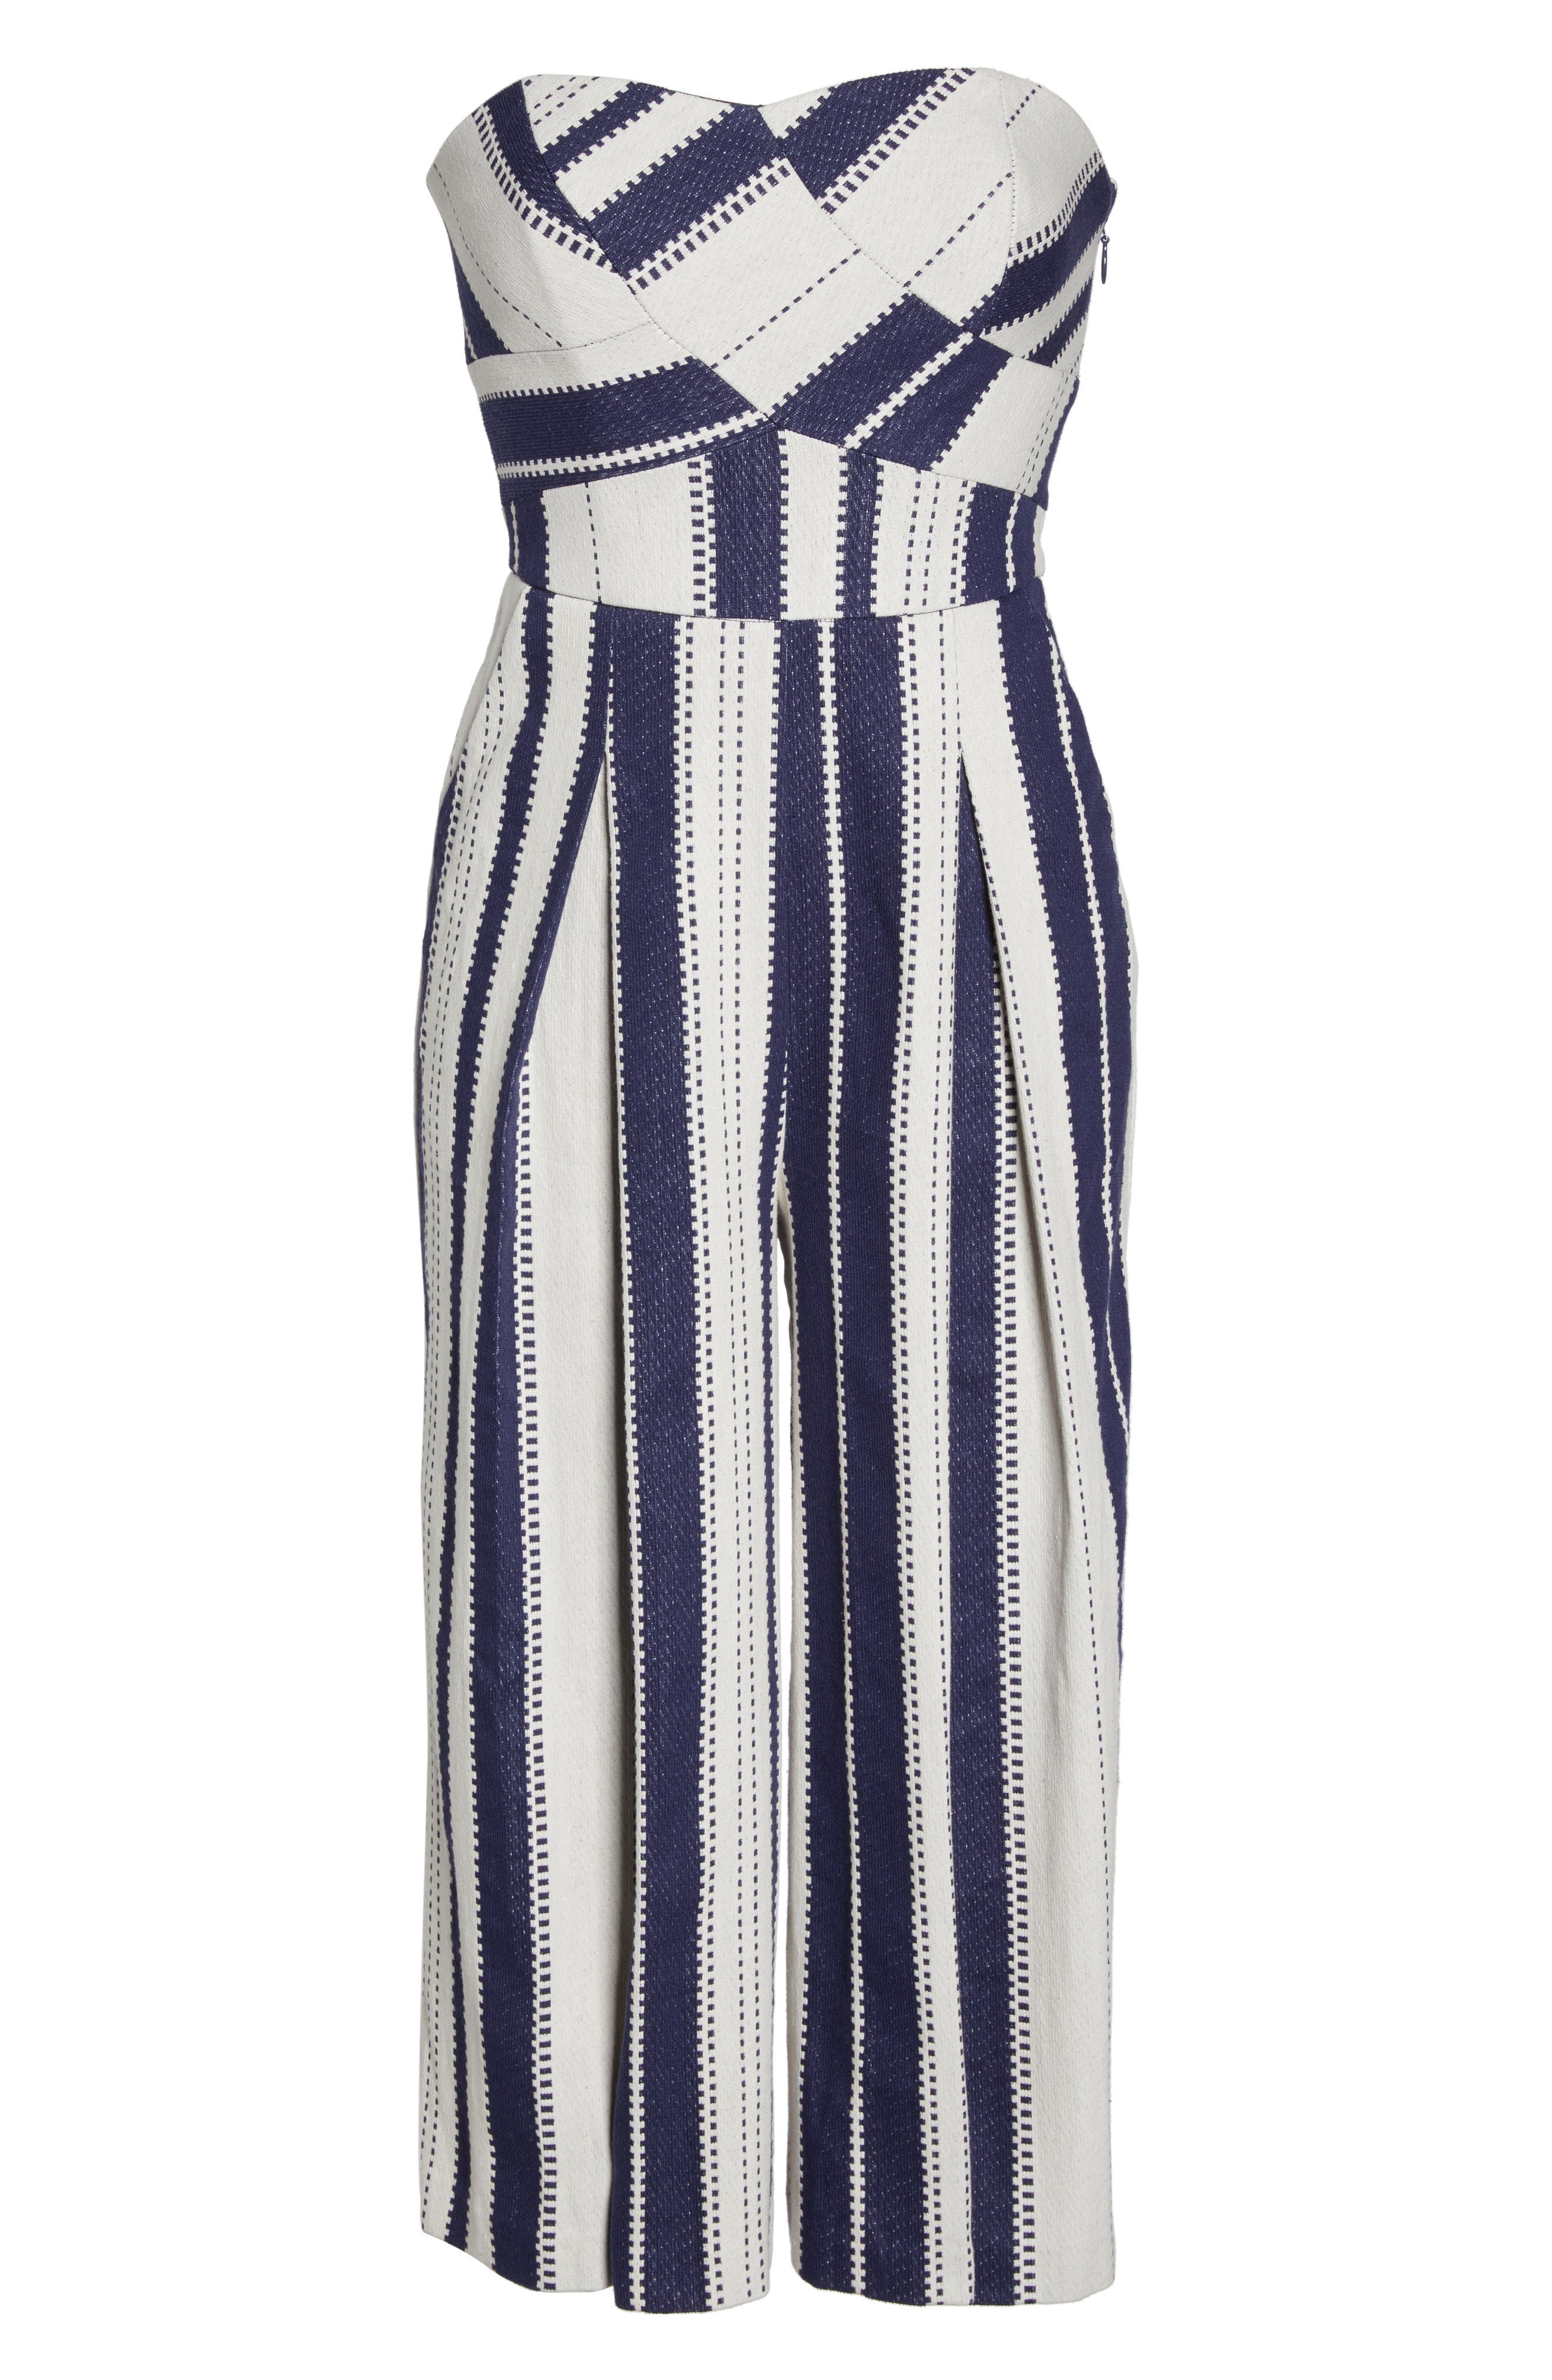 Justyna Strapless Jumpsuit,                             Alternate thumbnail 6, color,                             410